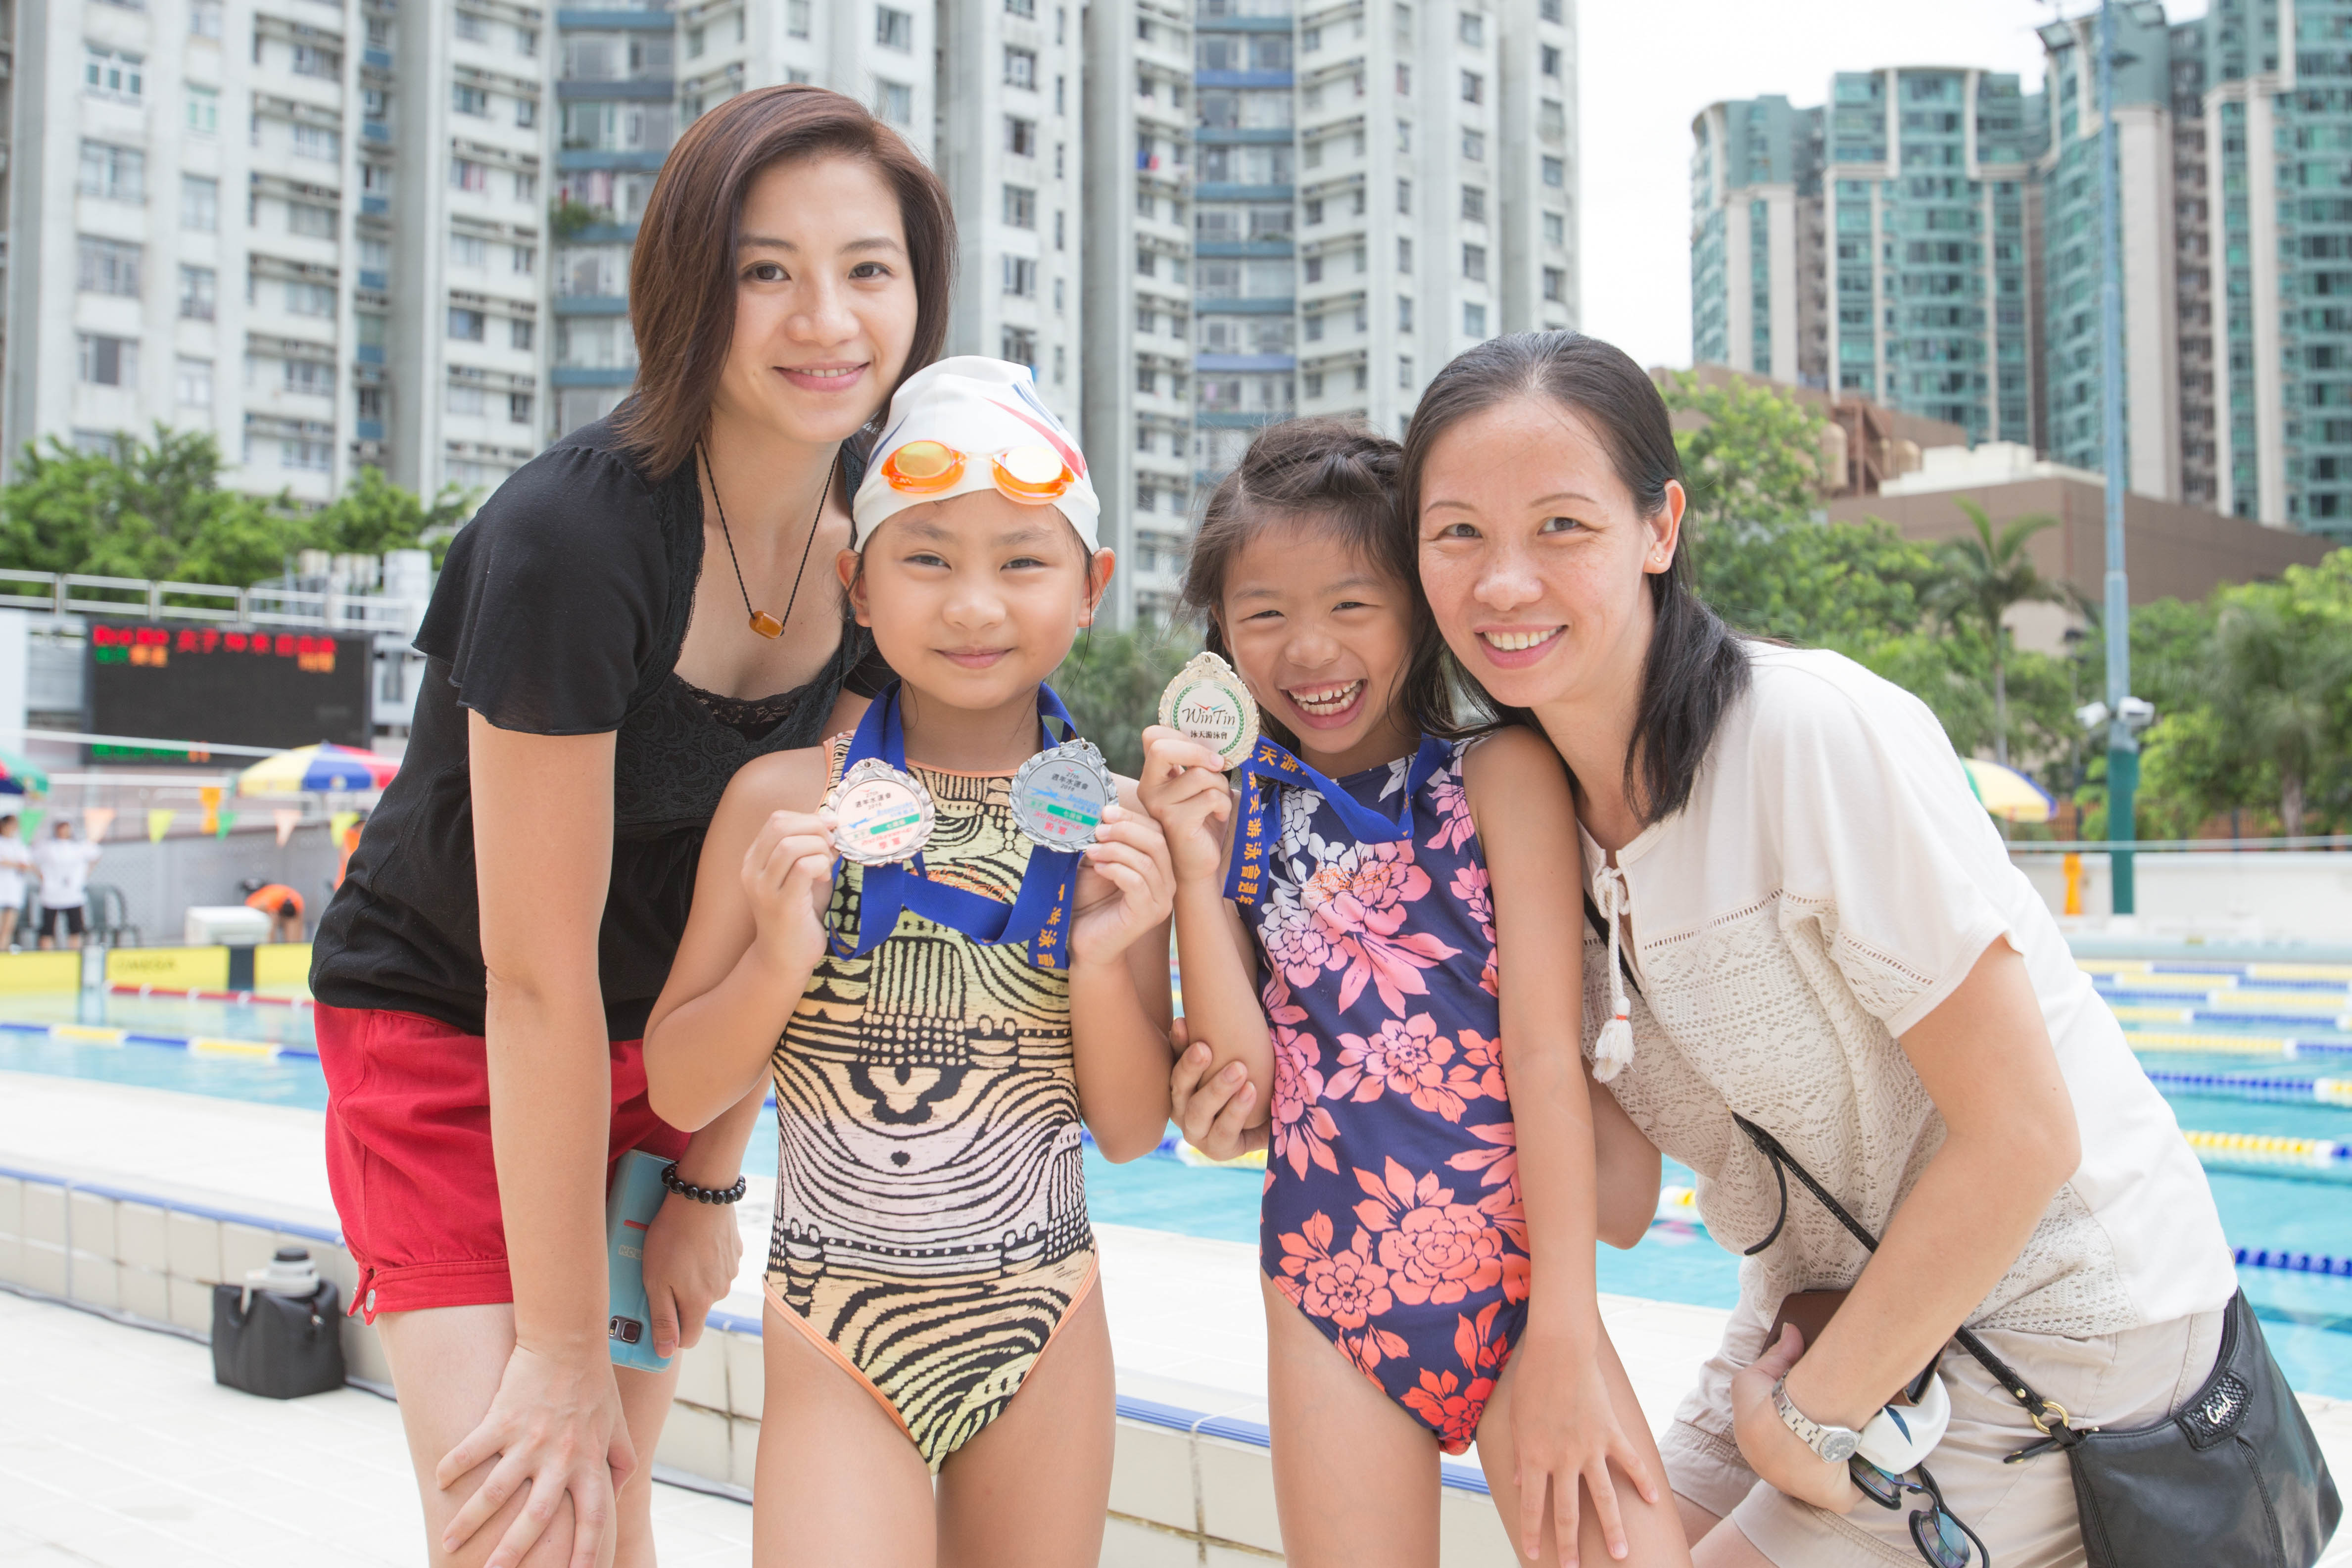 Win Tin Swimming Club - 27th Swimming Gala 4